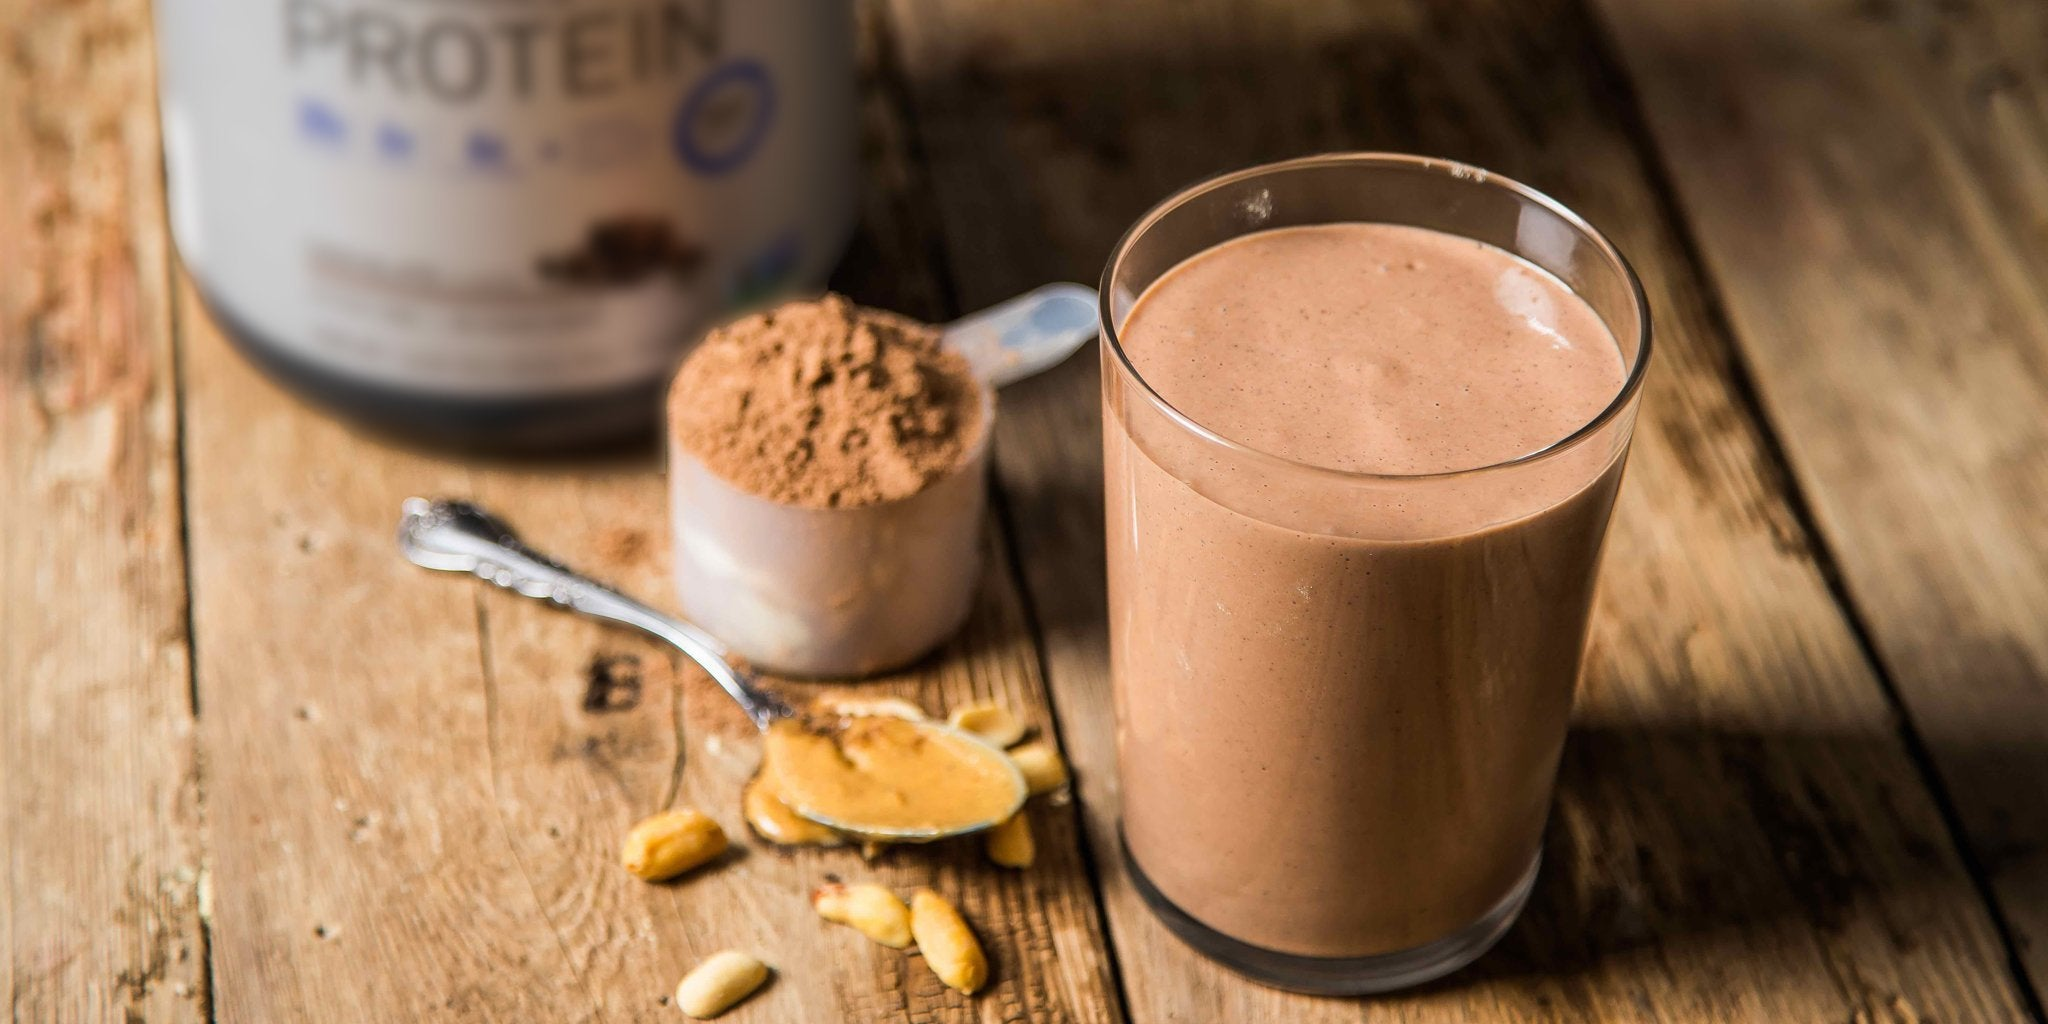 Do You Really Need Protein Powder to Build Muscle?